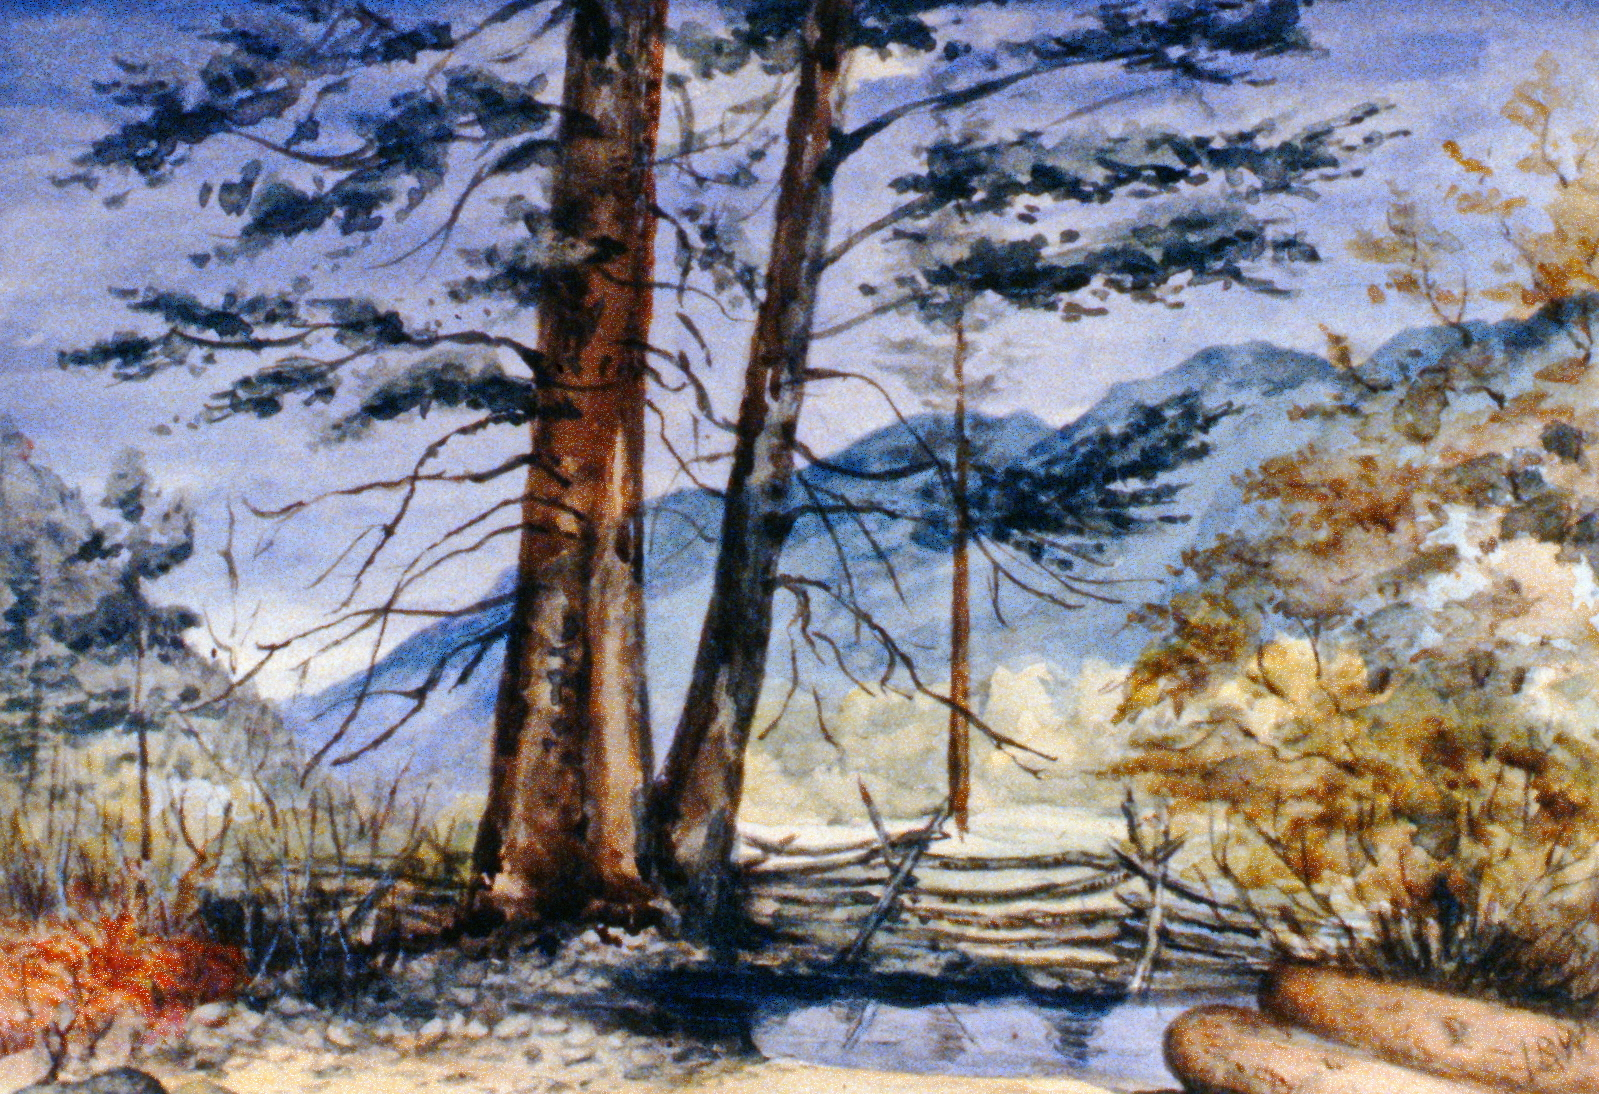 Untitled (Looking From Similkameen), c. 1895, Julia Bullock-Webster, watercolour on paper, 20.1 x 29.4 cm, 1983.02.11. Gift of Mrs. Barbara Steel.